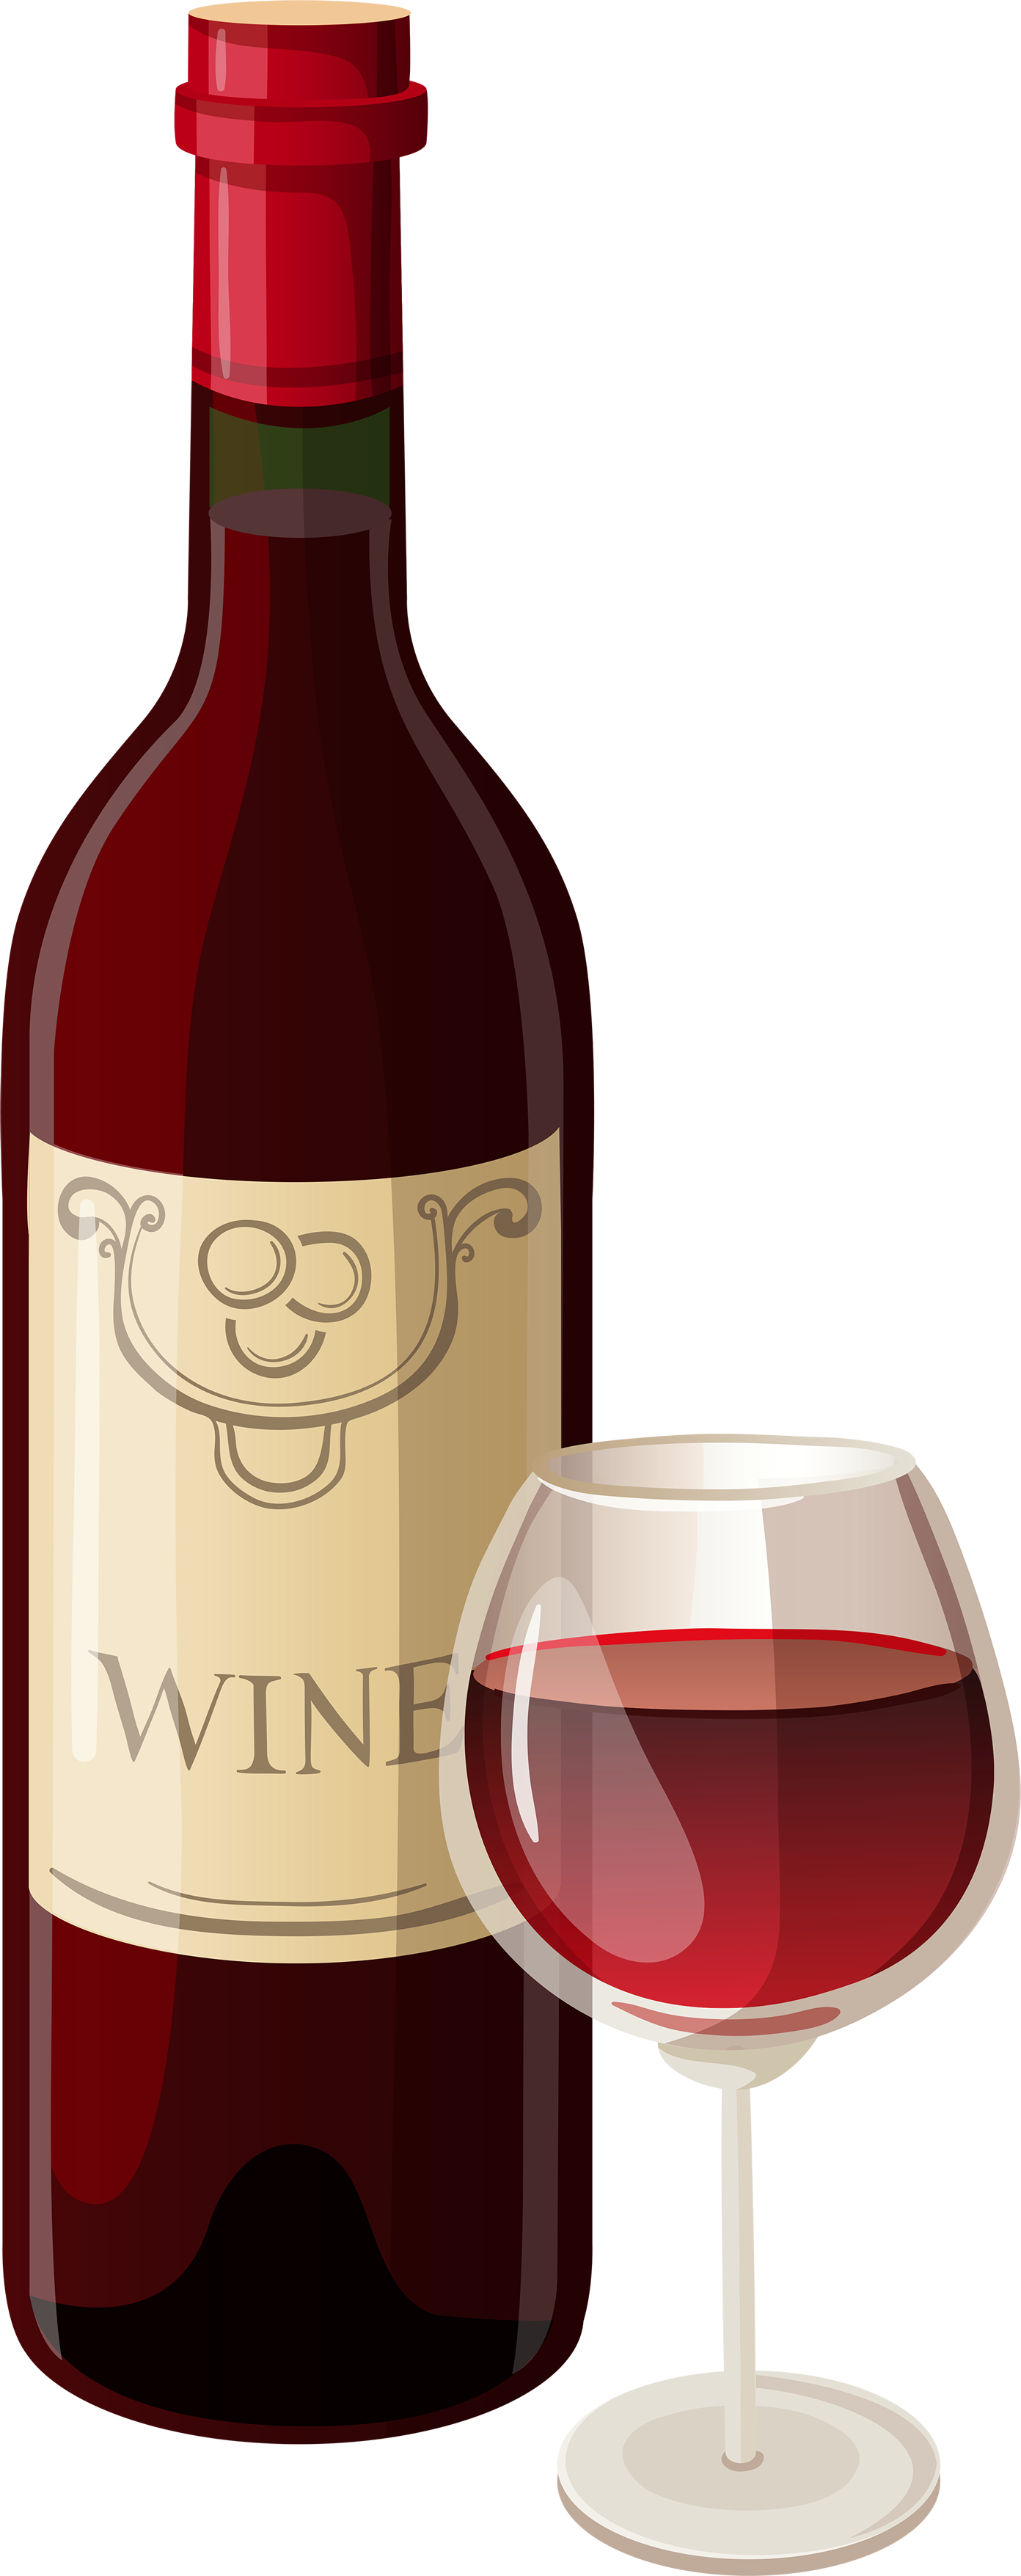 Image result for wine bottle and glass clip art